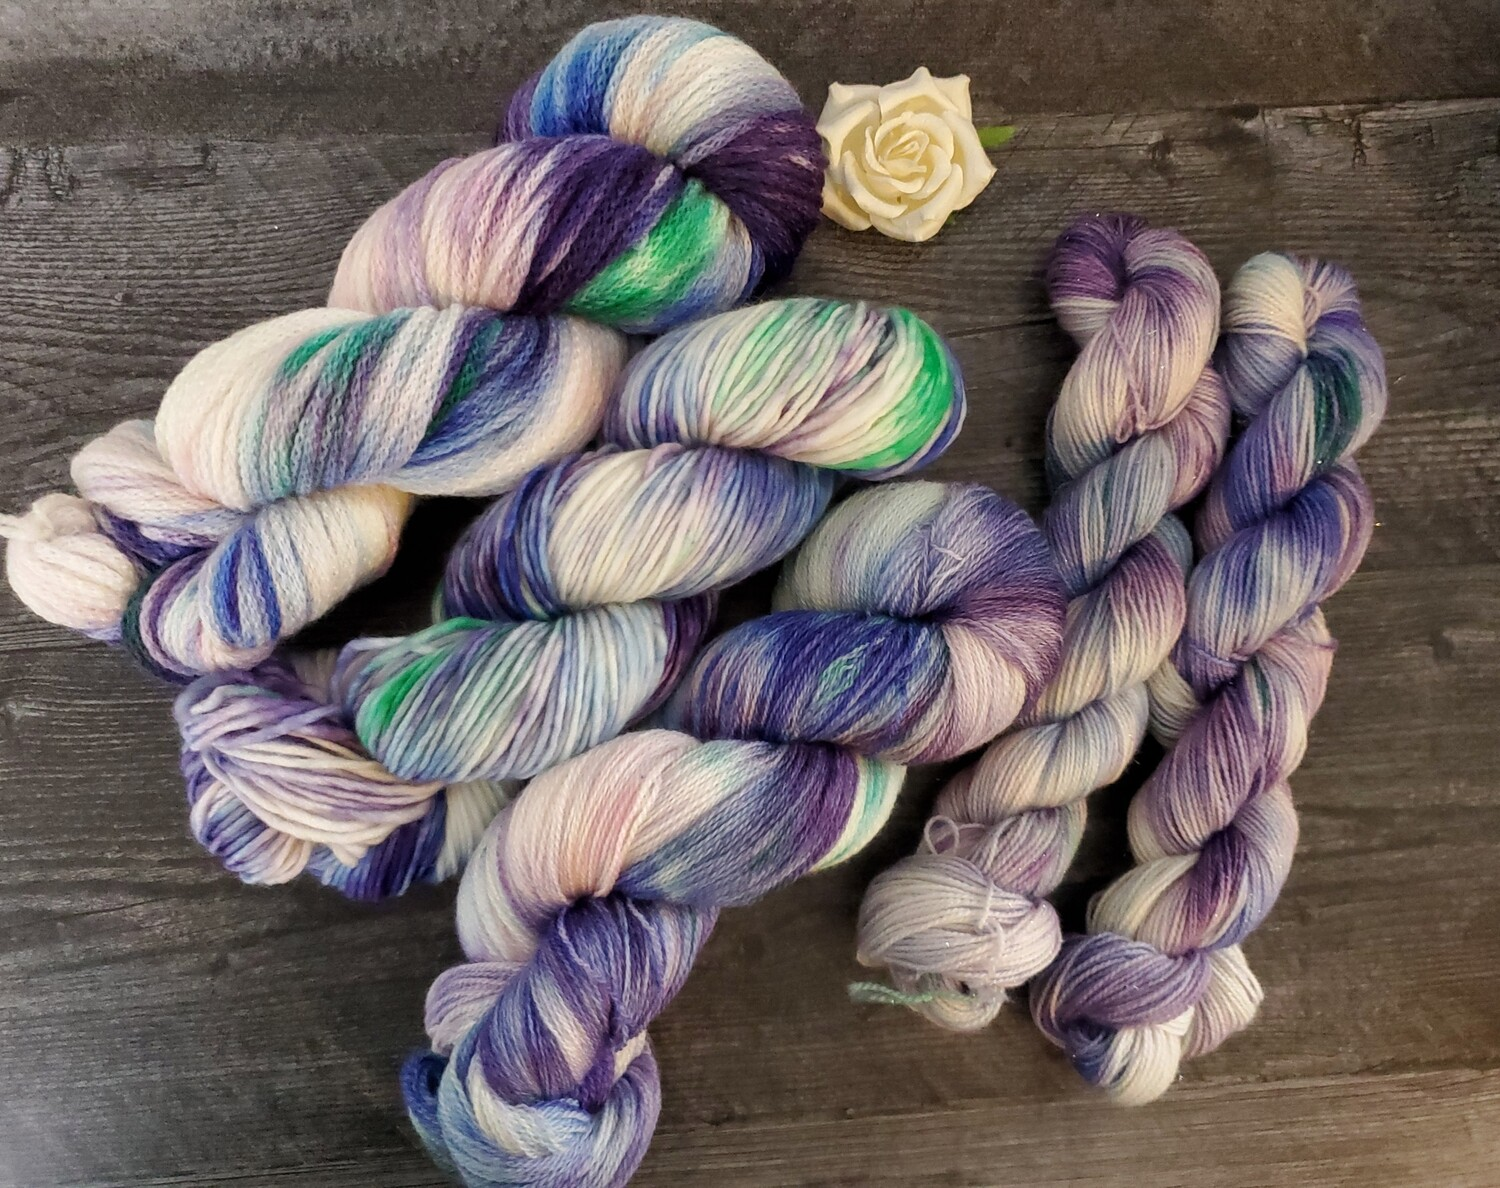 Mermaid Hand Dyed Yarn RTS